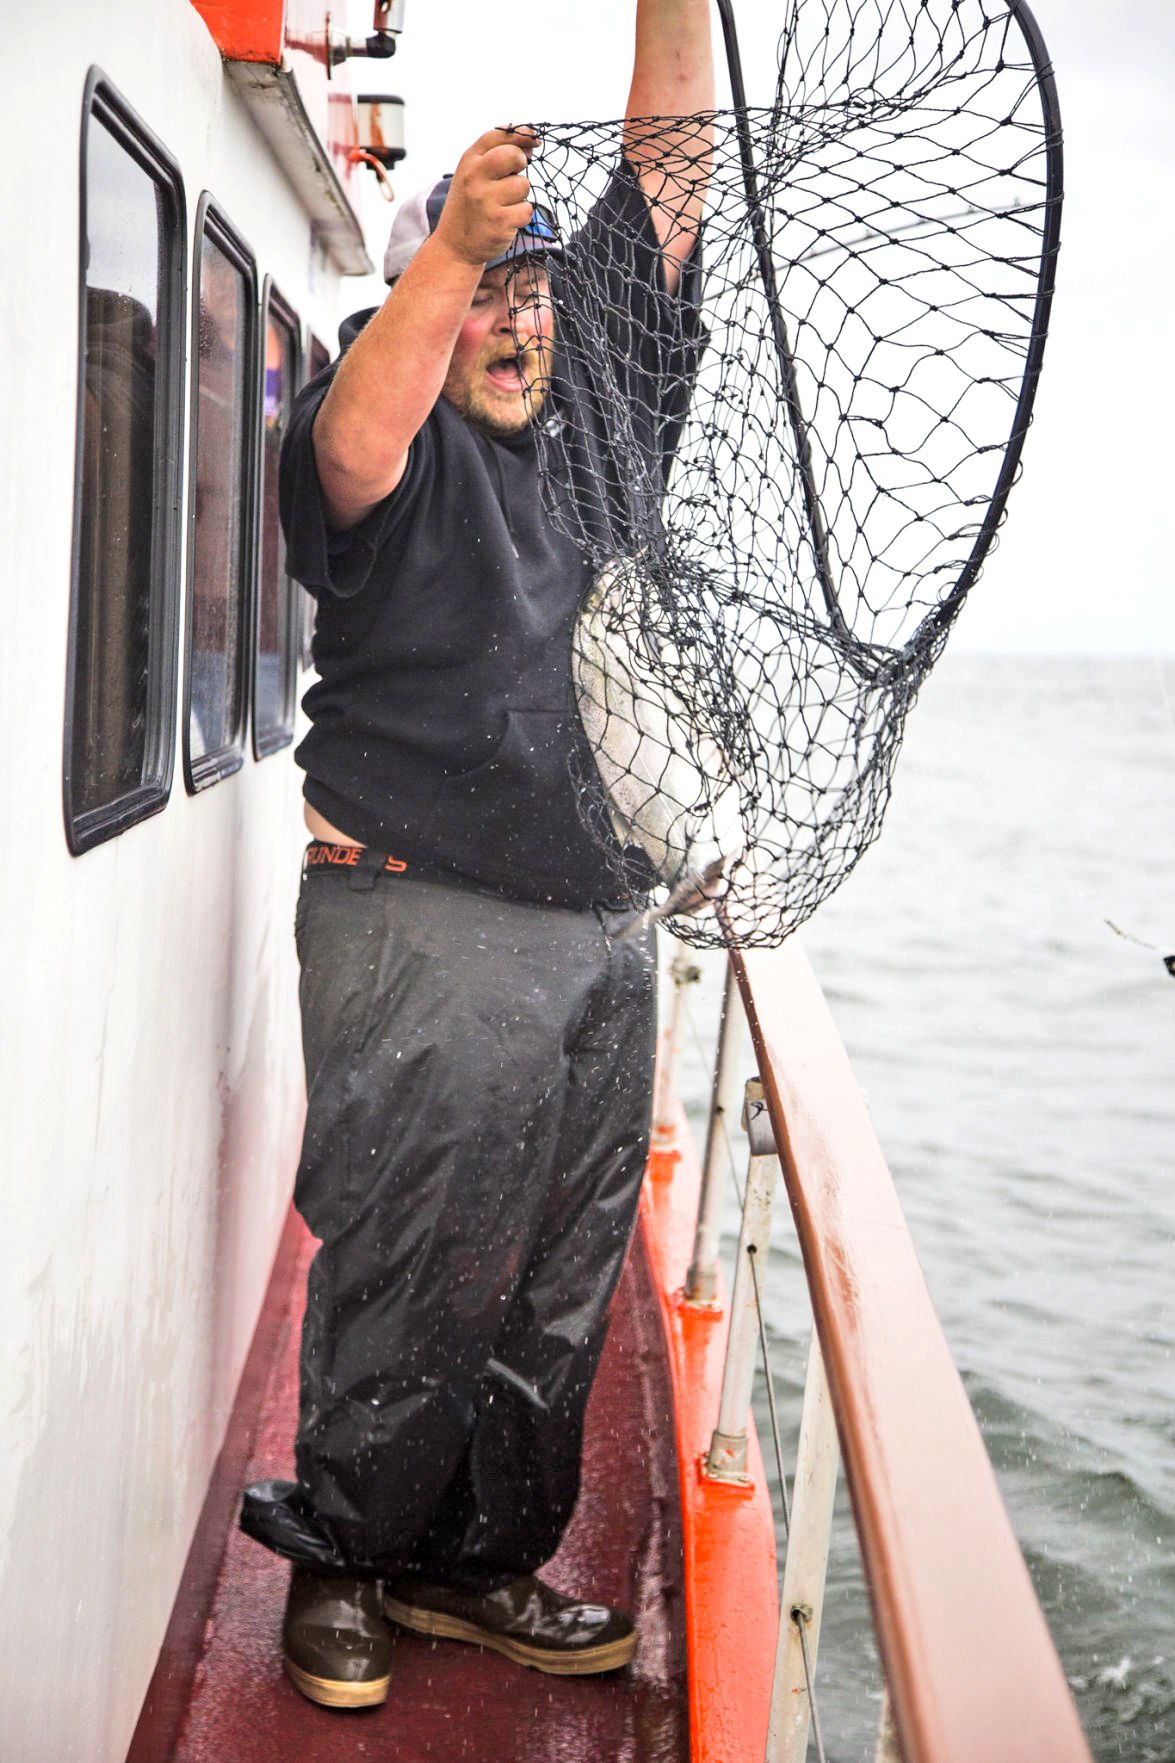 Deckhand Kevin Koski reacts to the first coho salmon